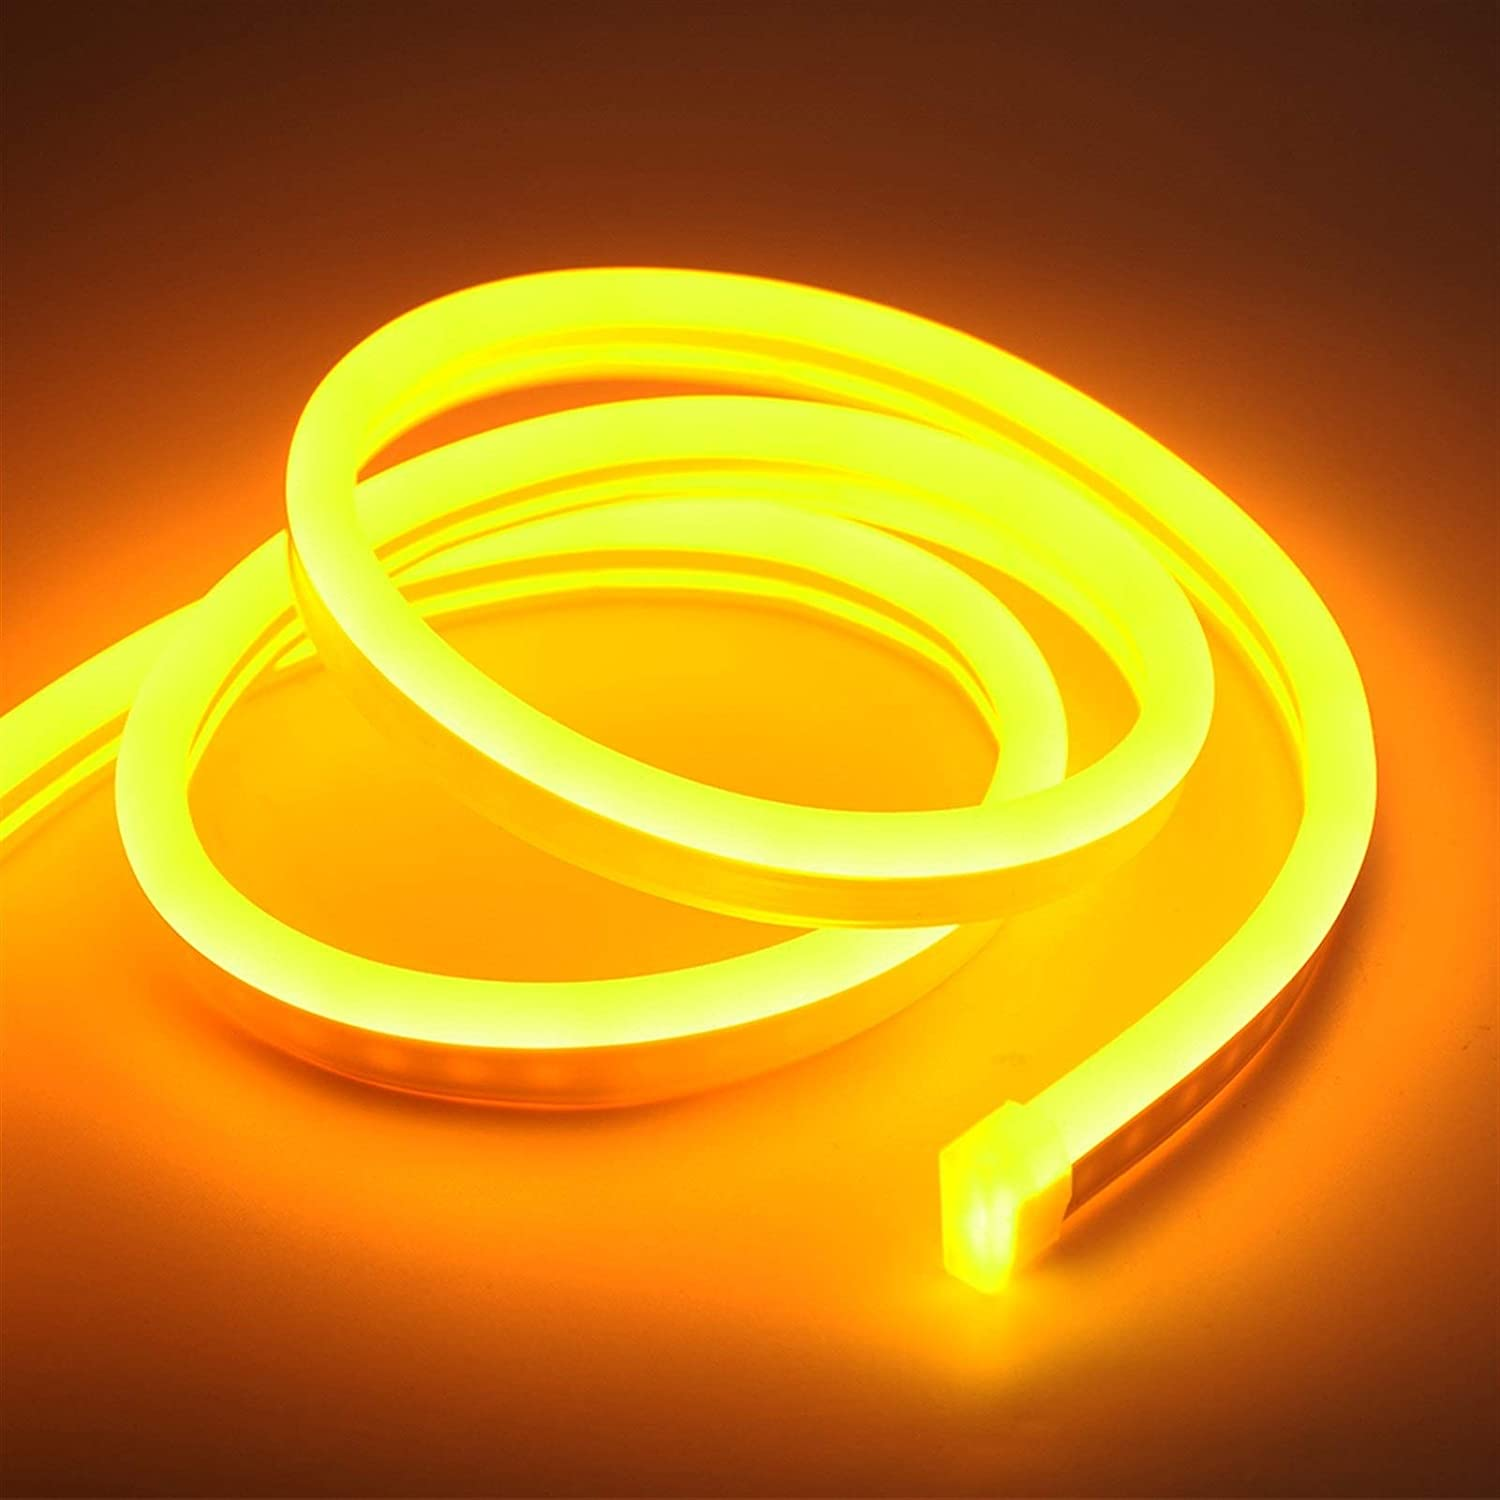 H A LED Strip lamp Sales of SALE items from new works neon 110V M 120LDS Light Waterproof High order SMD2835